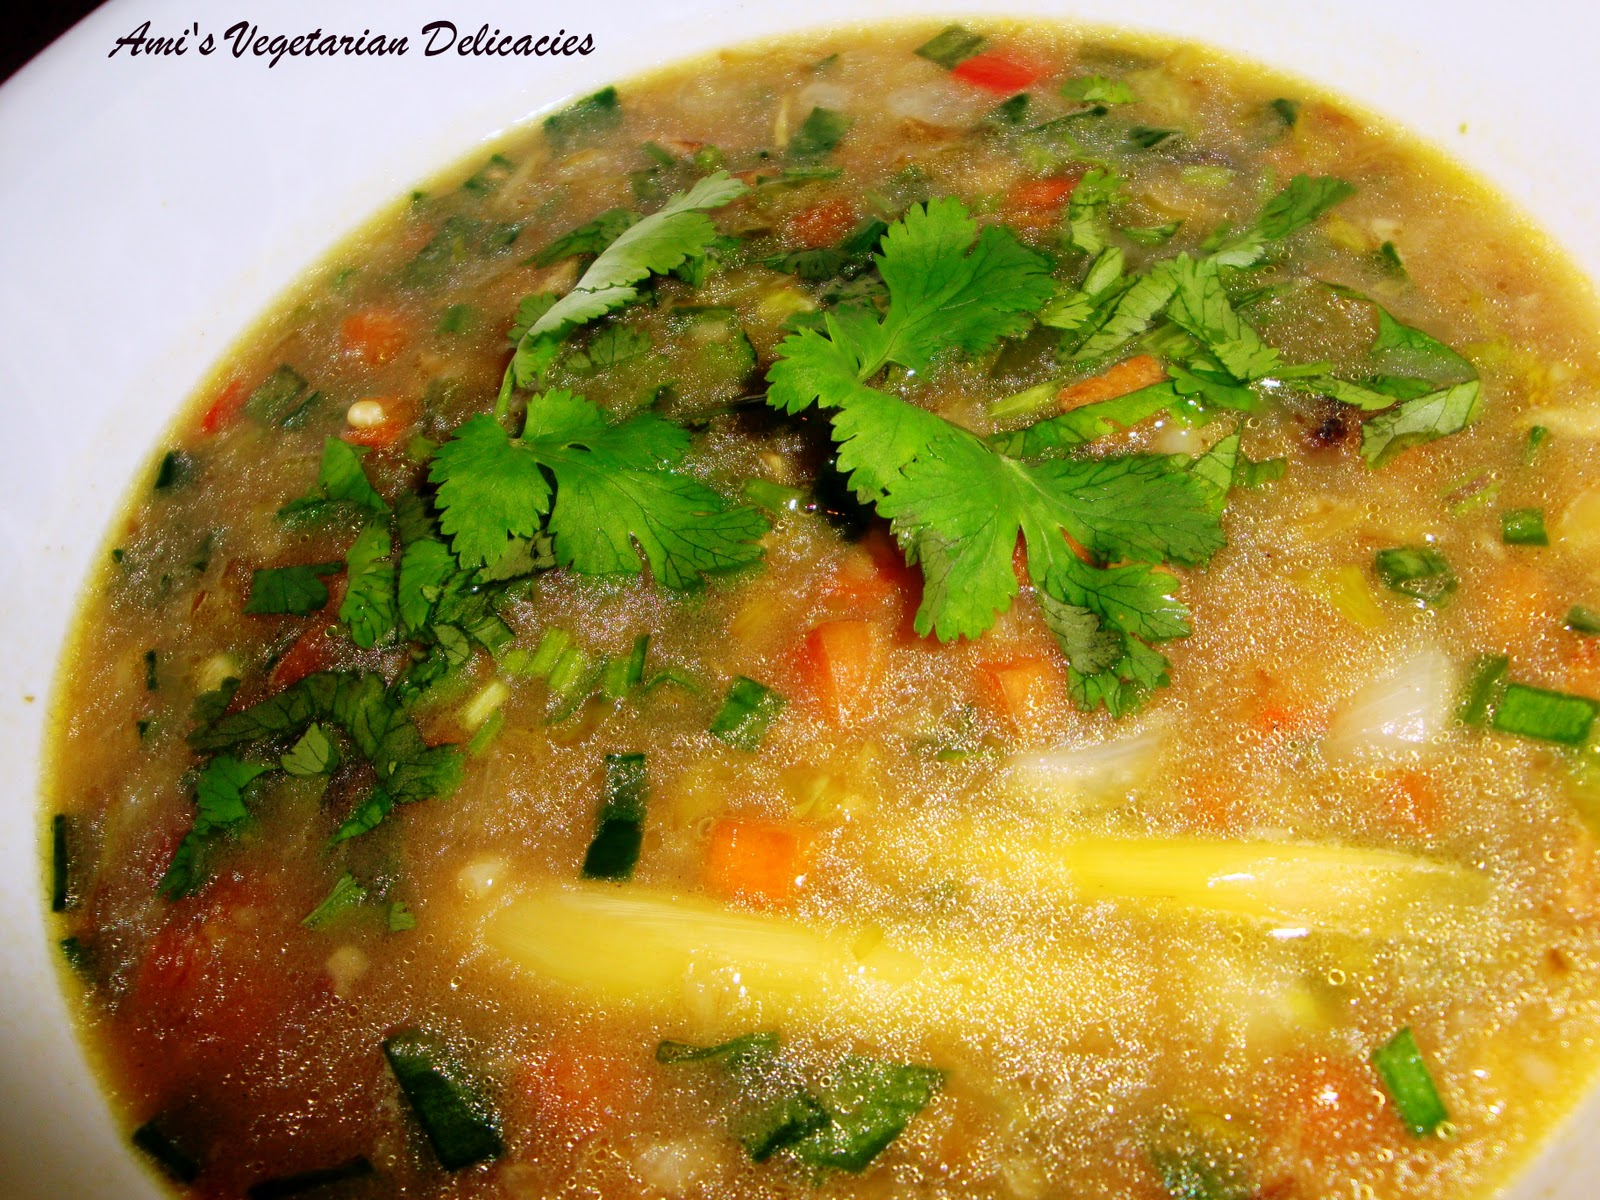 Ami's Vegetarian Delicacies: Lemon Grass and Vegetable Soup